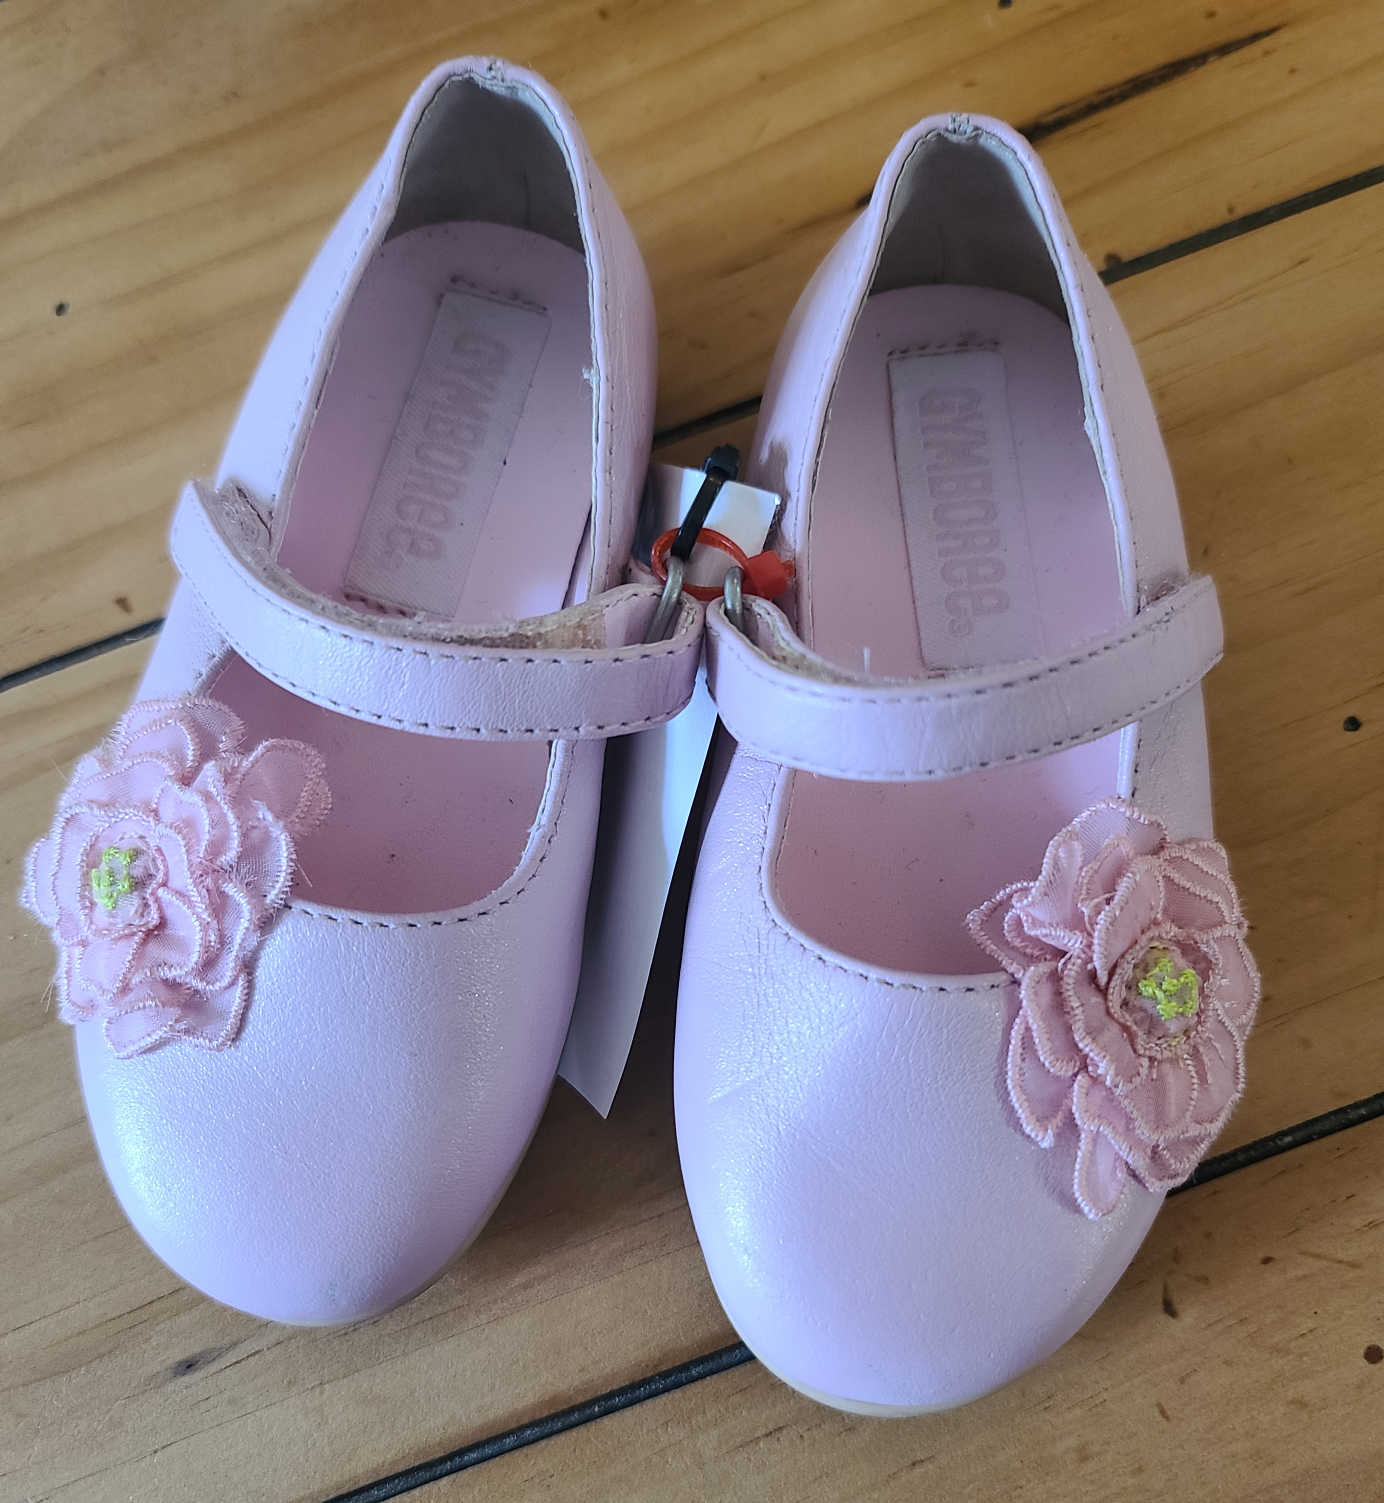 GYMBOREE dress shoes, Toddler Girls shoe size 5